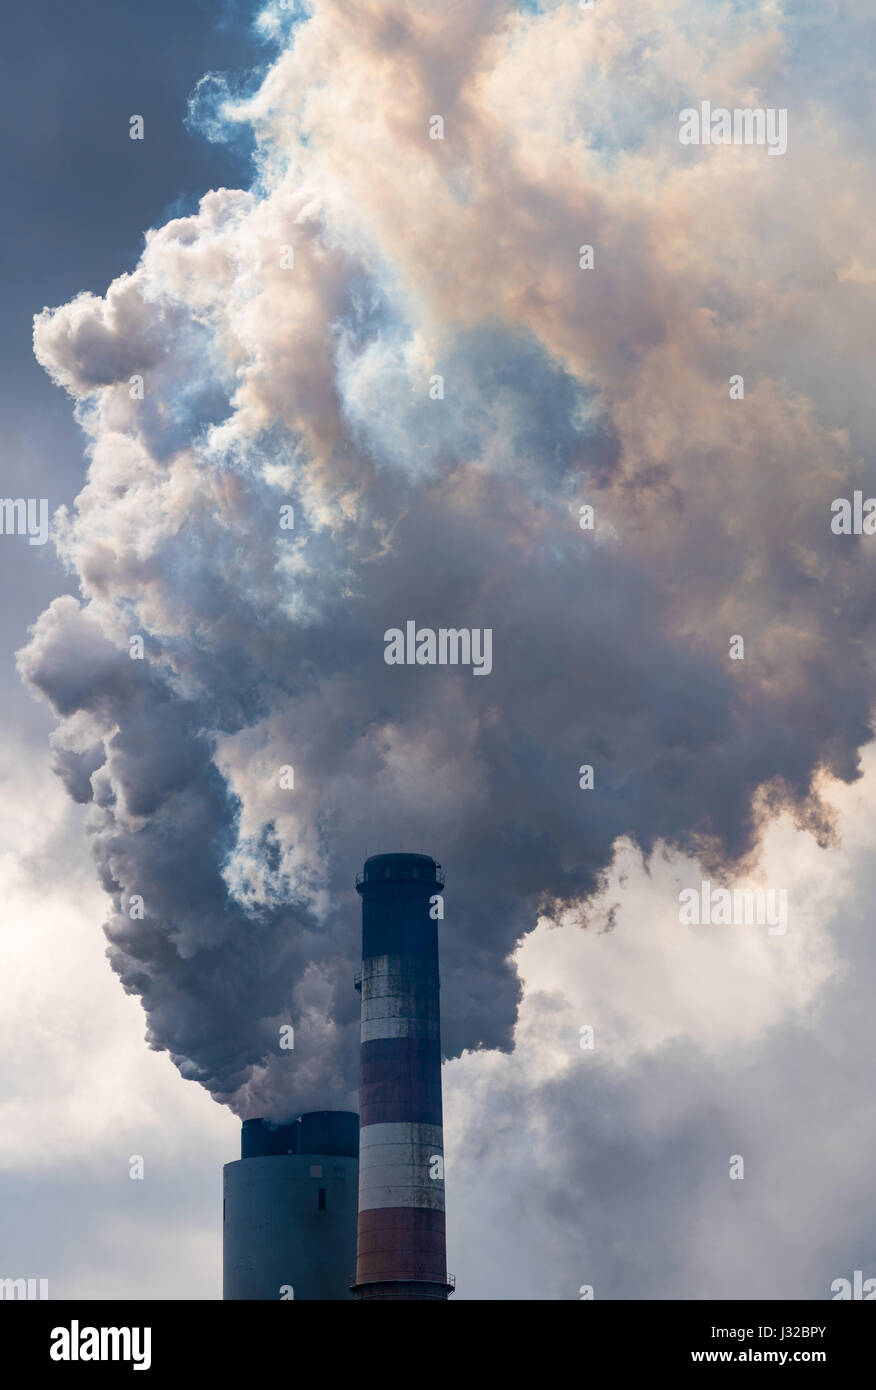 Coal Fired power station inquinamento atmosferico, STATI UNITI D'AMERICA Immagini Stock